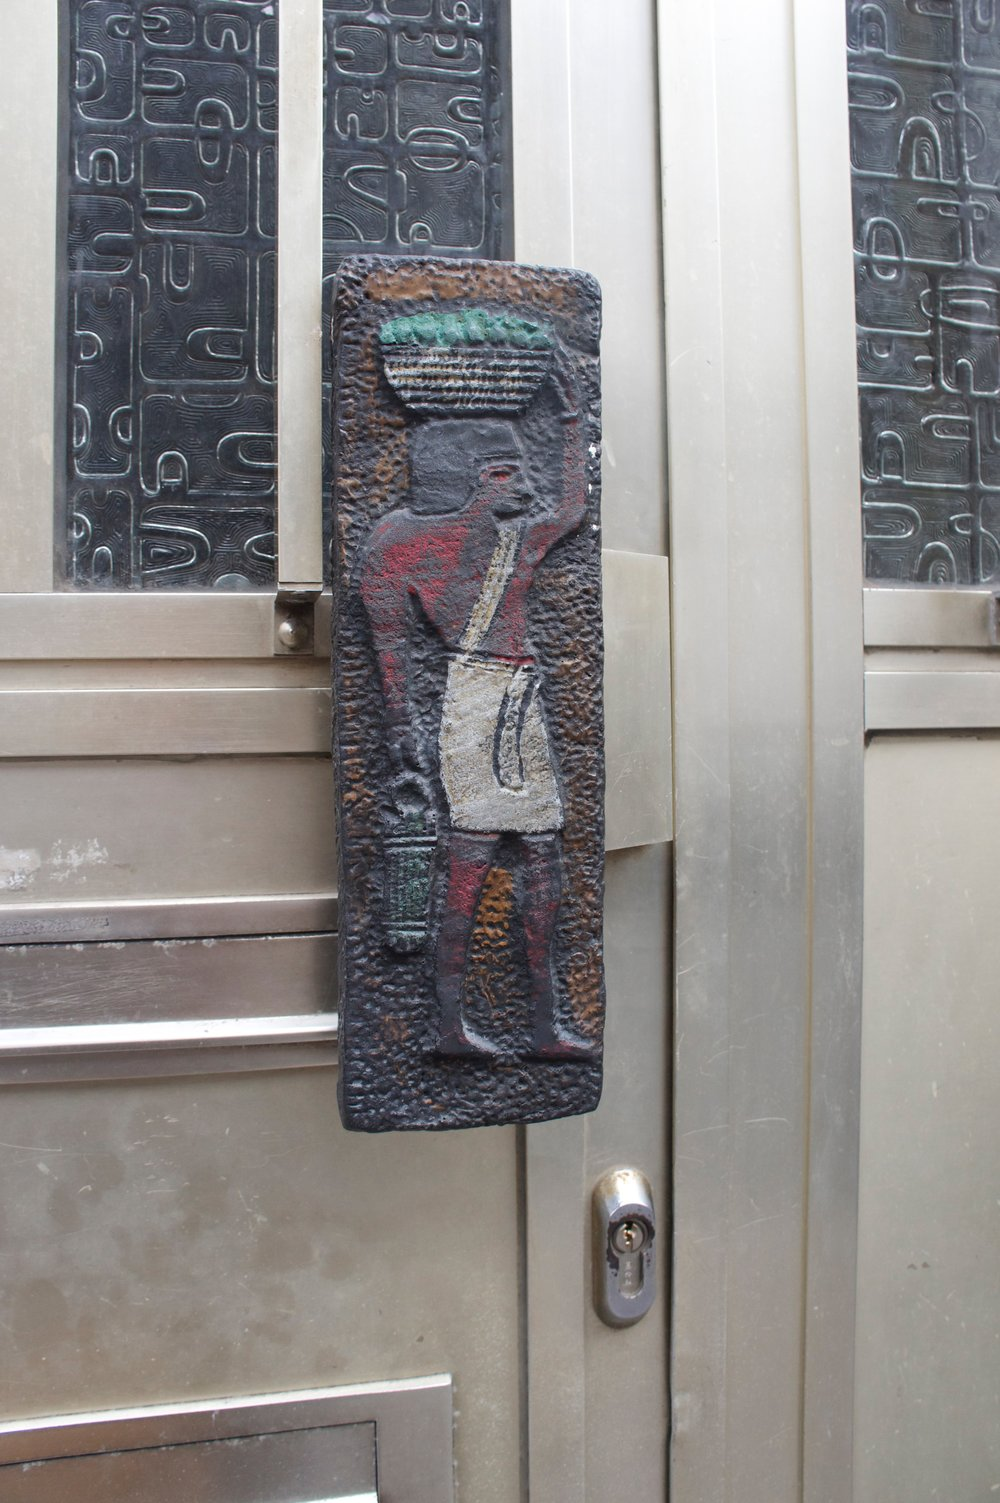 Egypt, Egypt, Egyption lover, couldn't resist :). Look at how this sand cast bronze handle has been hand painted, and look at this matching pressed metal panels on the door, such a beautiful way to secure you're property in the badlands of Brussels. It's really a gorgeous place but it does have a slightly harder edge than it's surrounding european capitols, however weirdly its actually one of those cities i'd consider moving to, even if fuze isn't what it used to be.